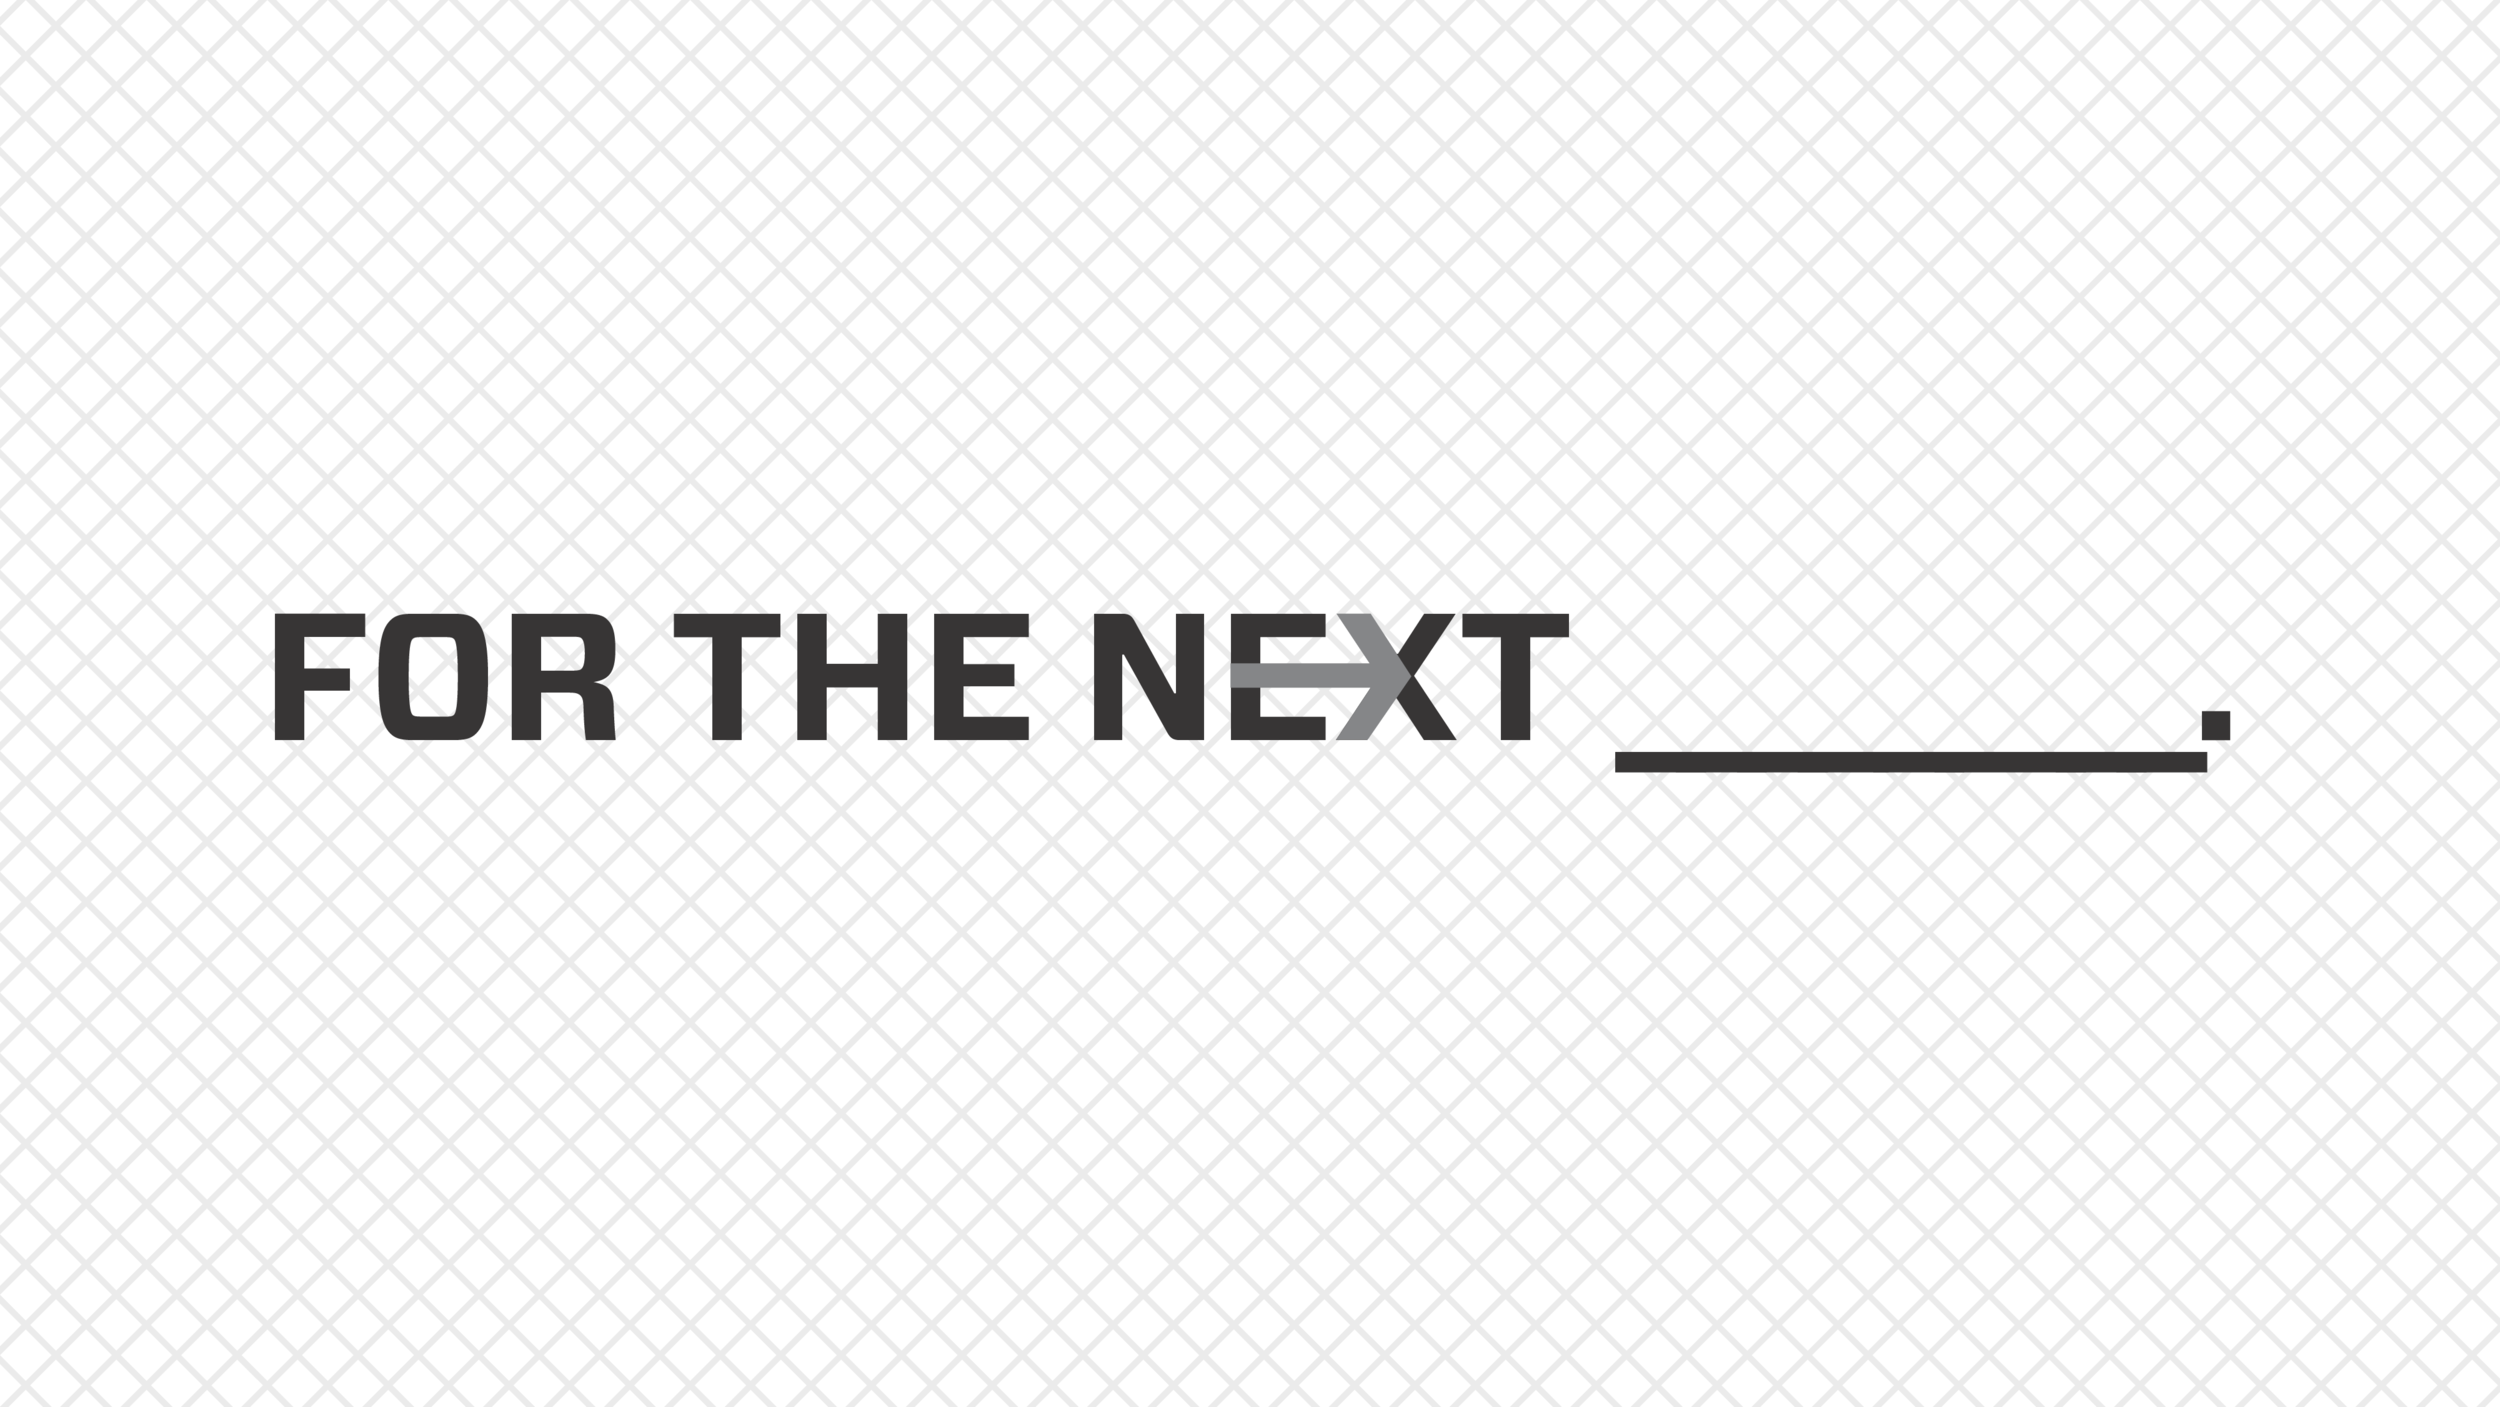 For the Next - For the Next… is a series designed to teach us how to prepare our hearts for what God has next. Focused on the next YOU. FAMILY. CITY. we pointed forward to what God wants to use each of us to accomplish.